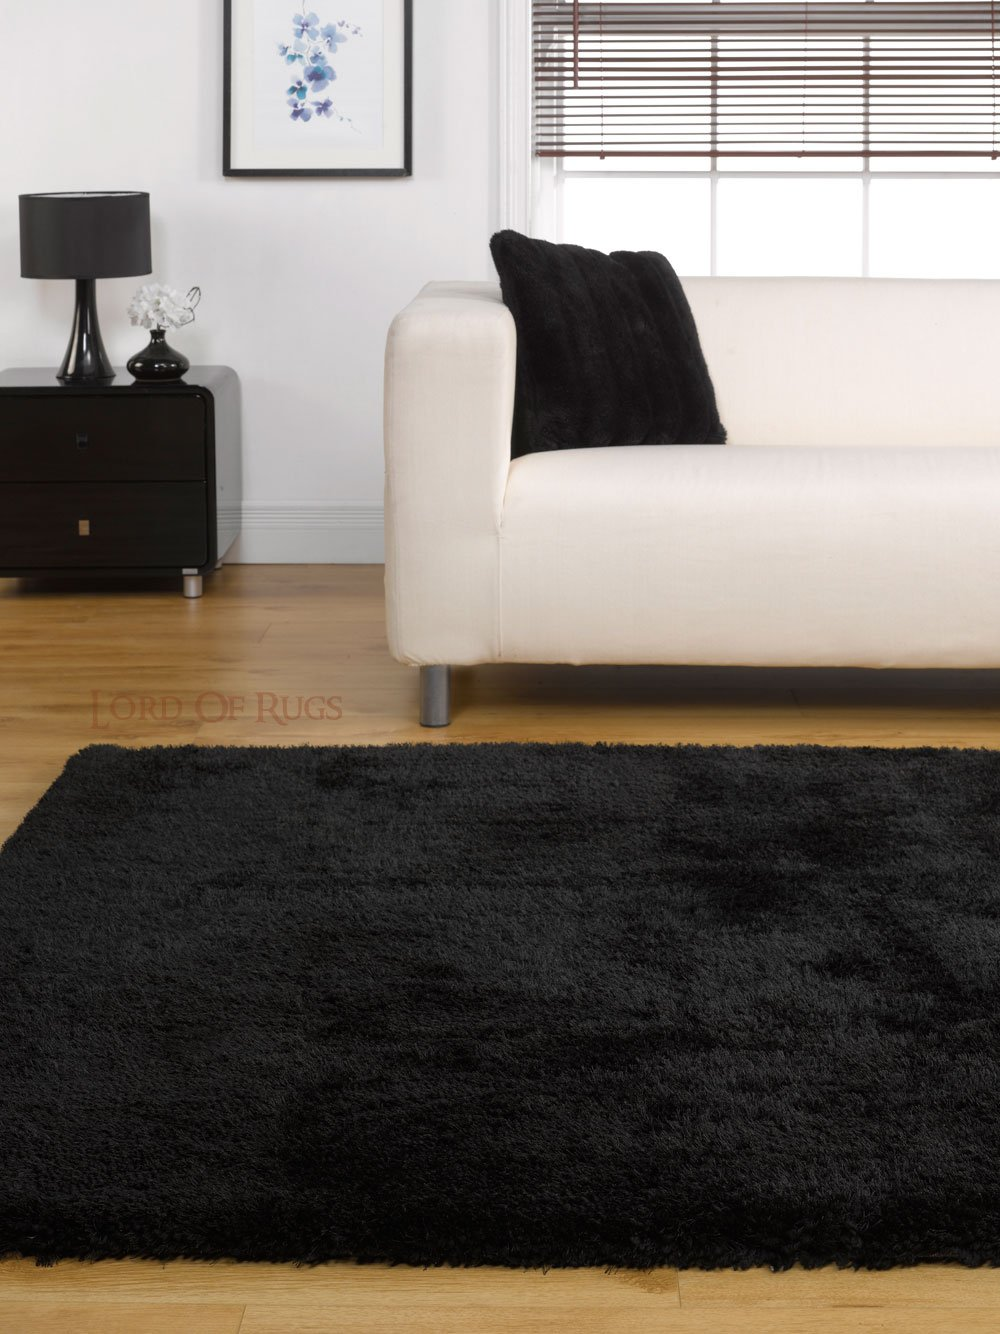 Large Soft Thick Luxurious Shaggy Rug In Black 160 X 220 Cm (5u00273 X 7u00273)  Carpet By Lord Of Rugs: Amazon.co.uk: Kitchen U0026 Home